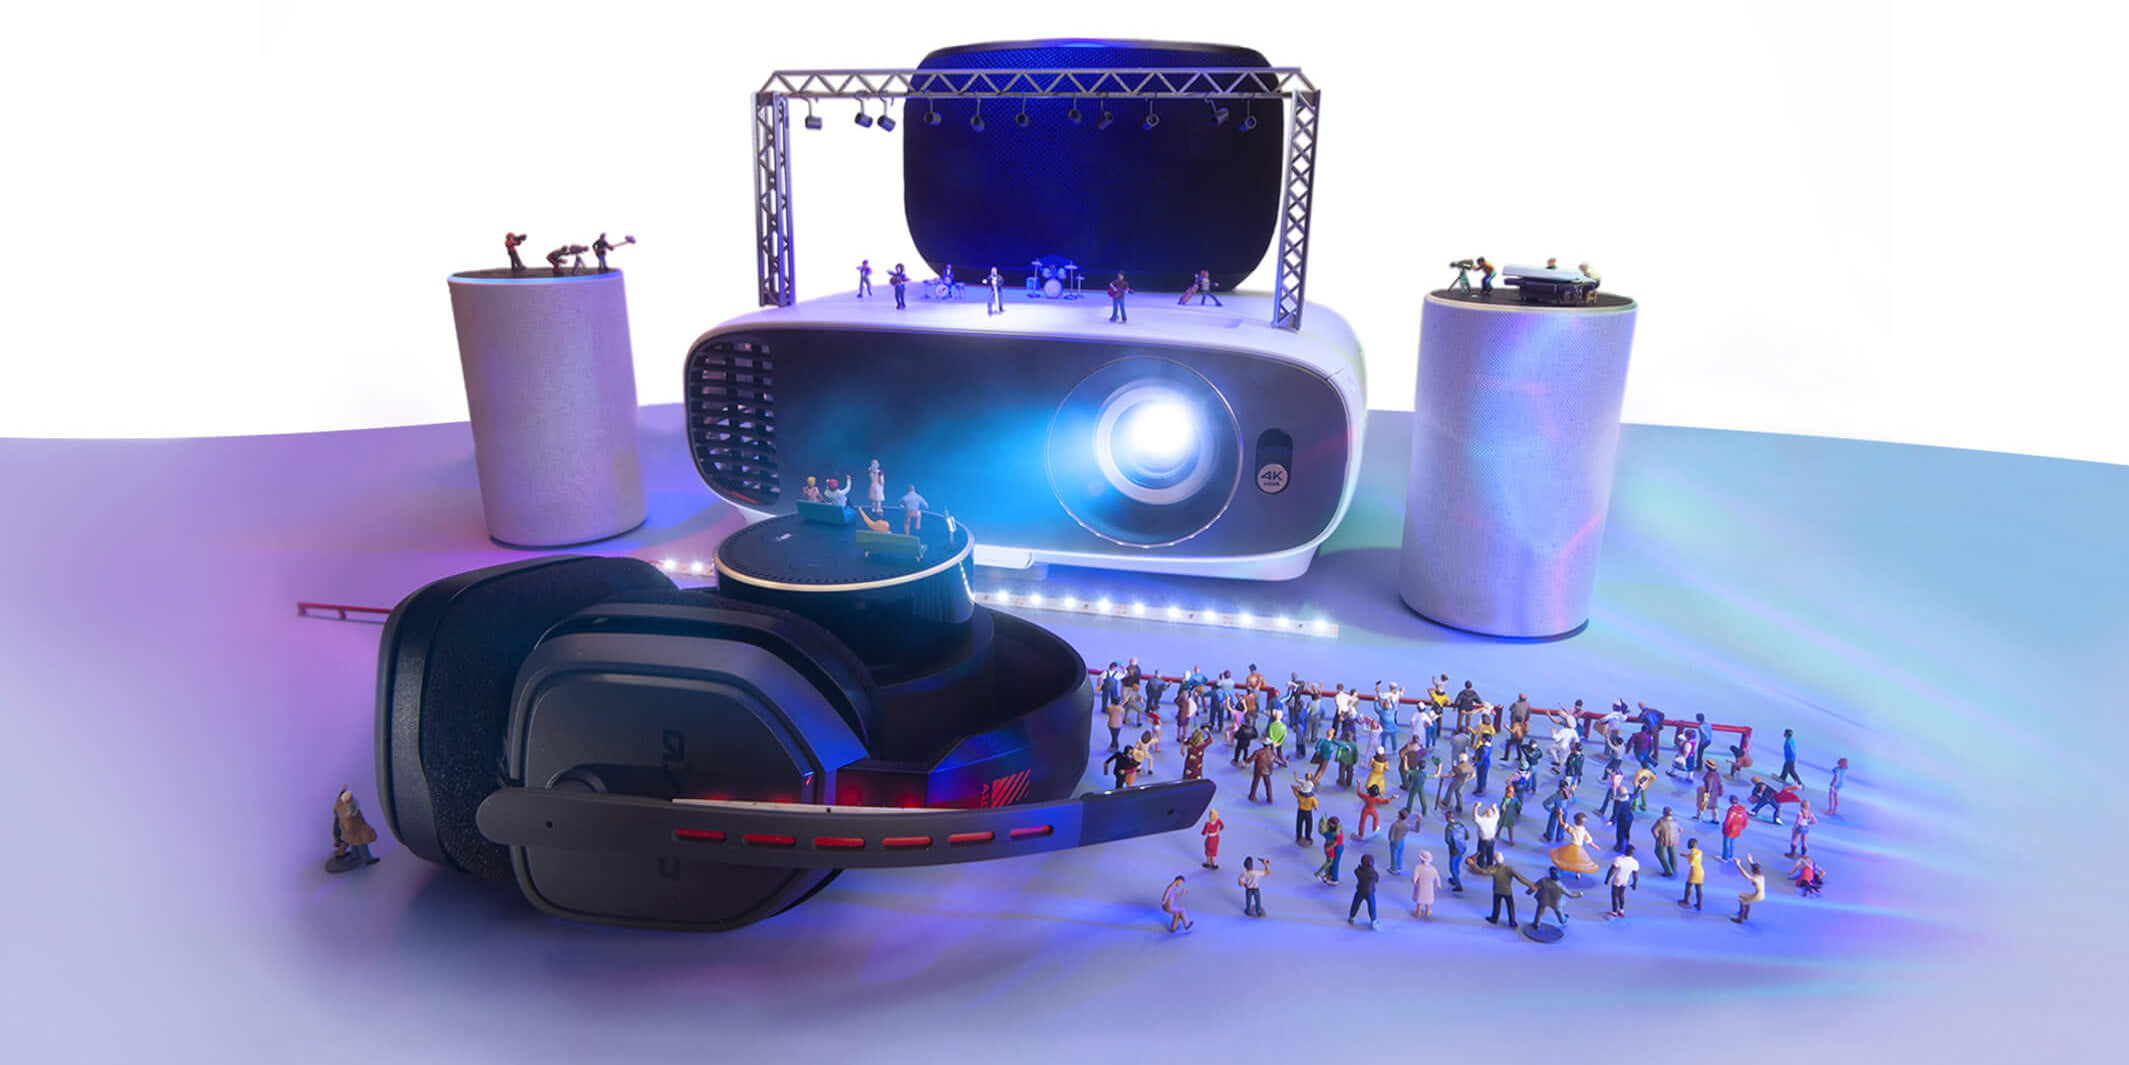 Pleasing audiophiles is hard. But these gifts will manage to make 'em smile